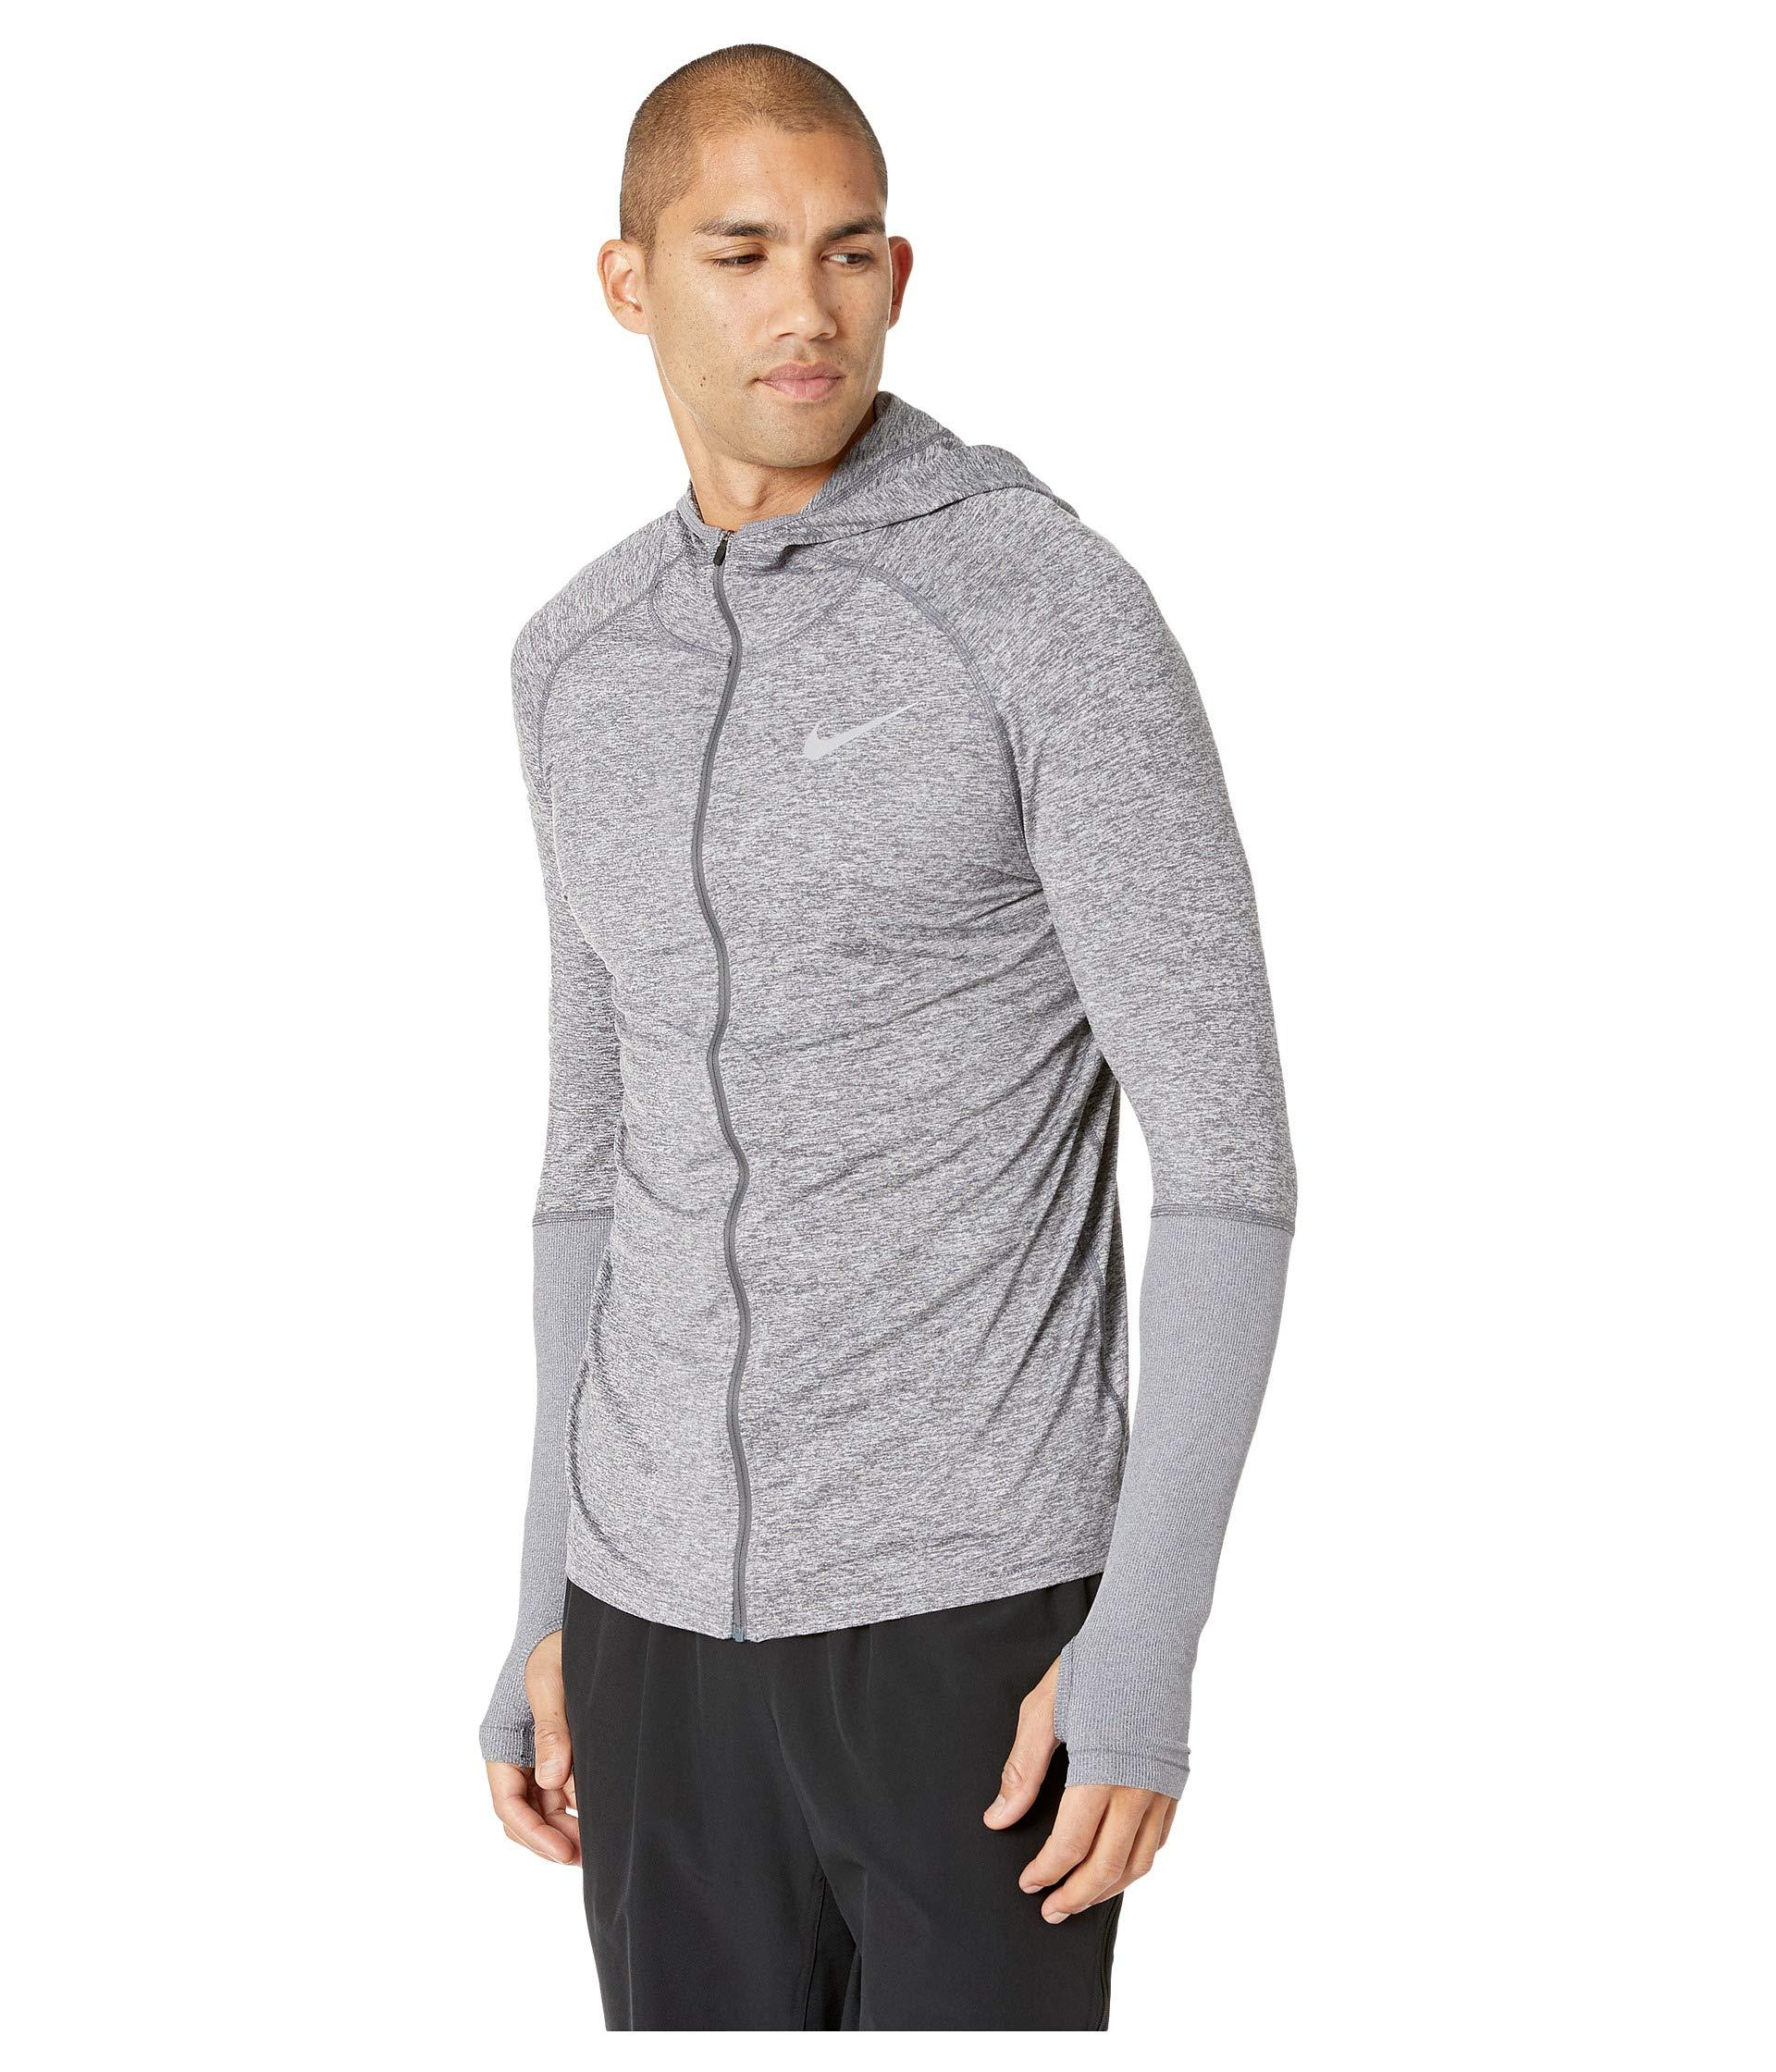 f101d5b4810fa Lyst - Nike Element Full Zip Hoodie in Gray for Men - Save 15%